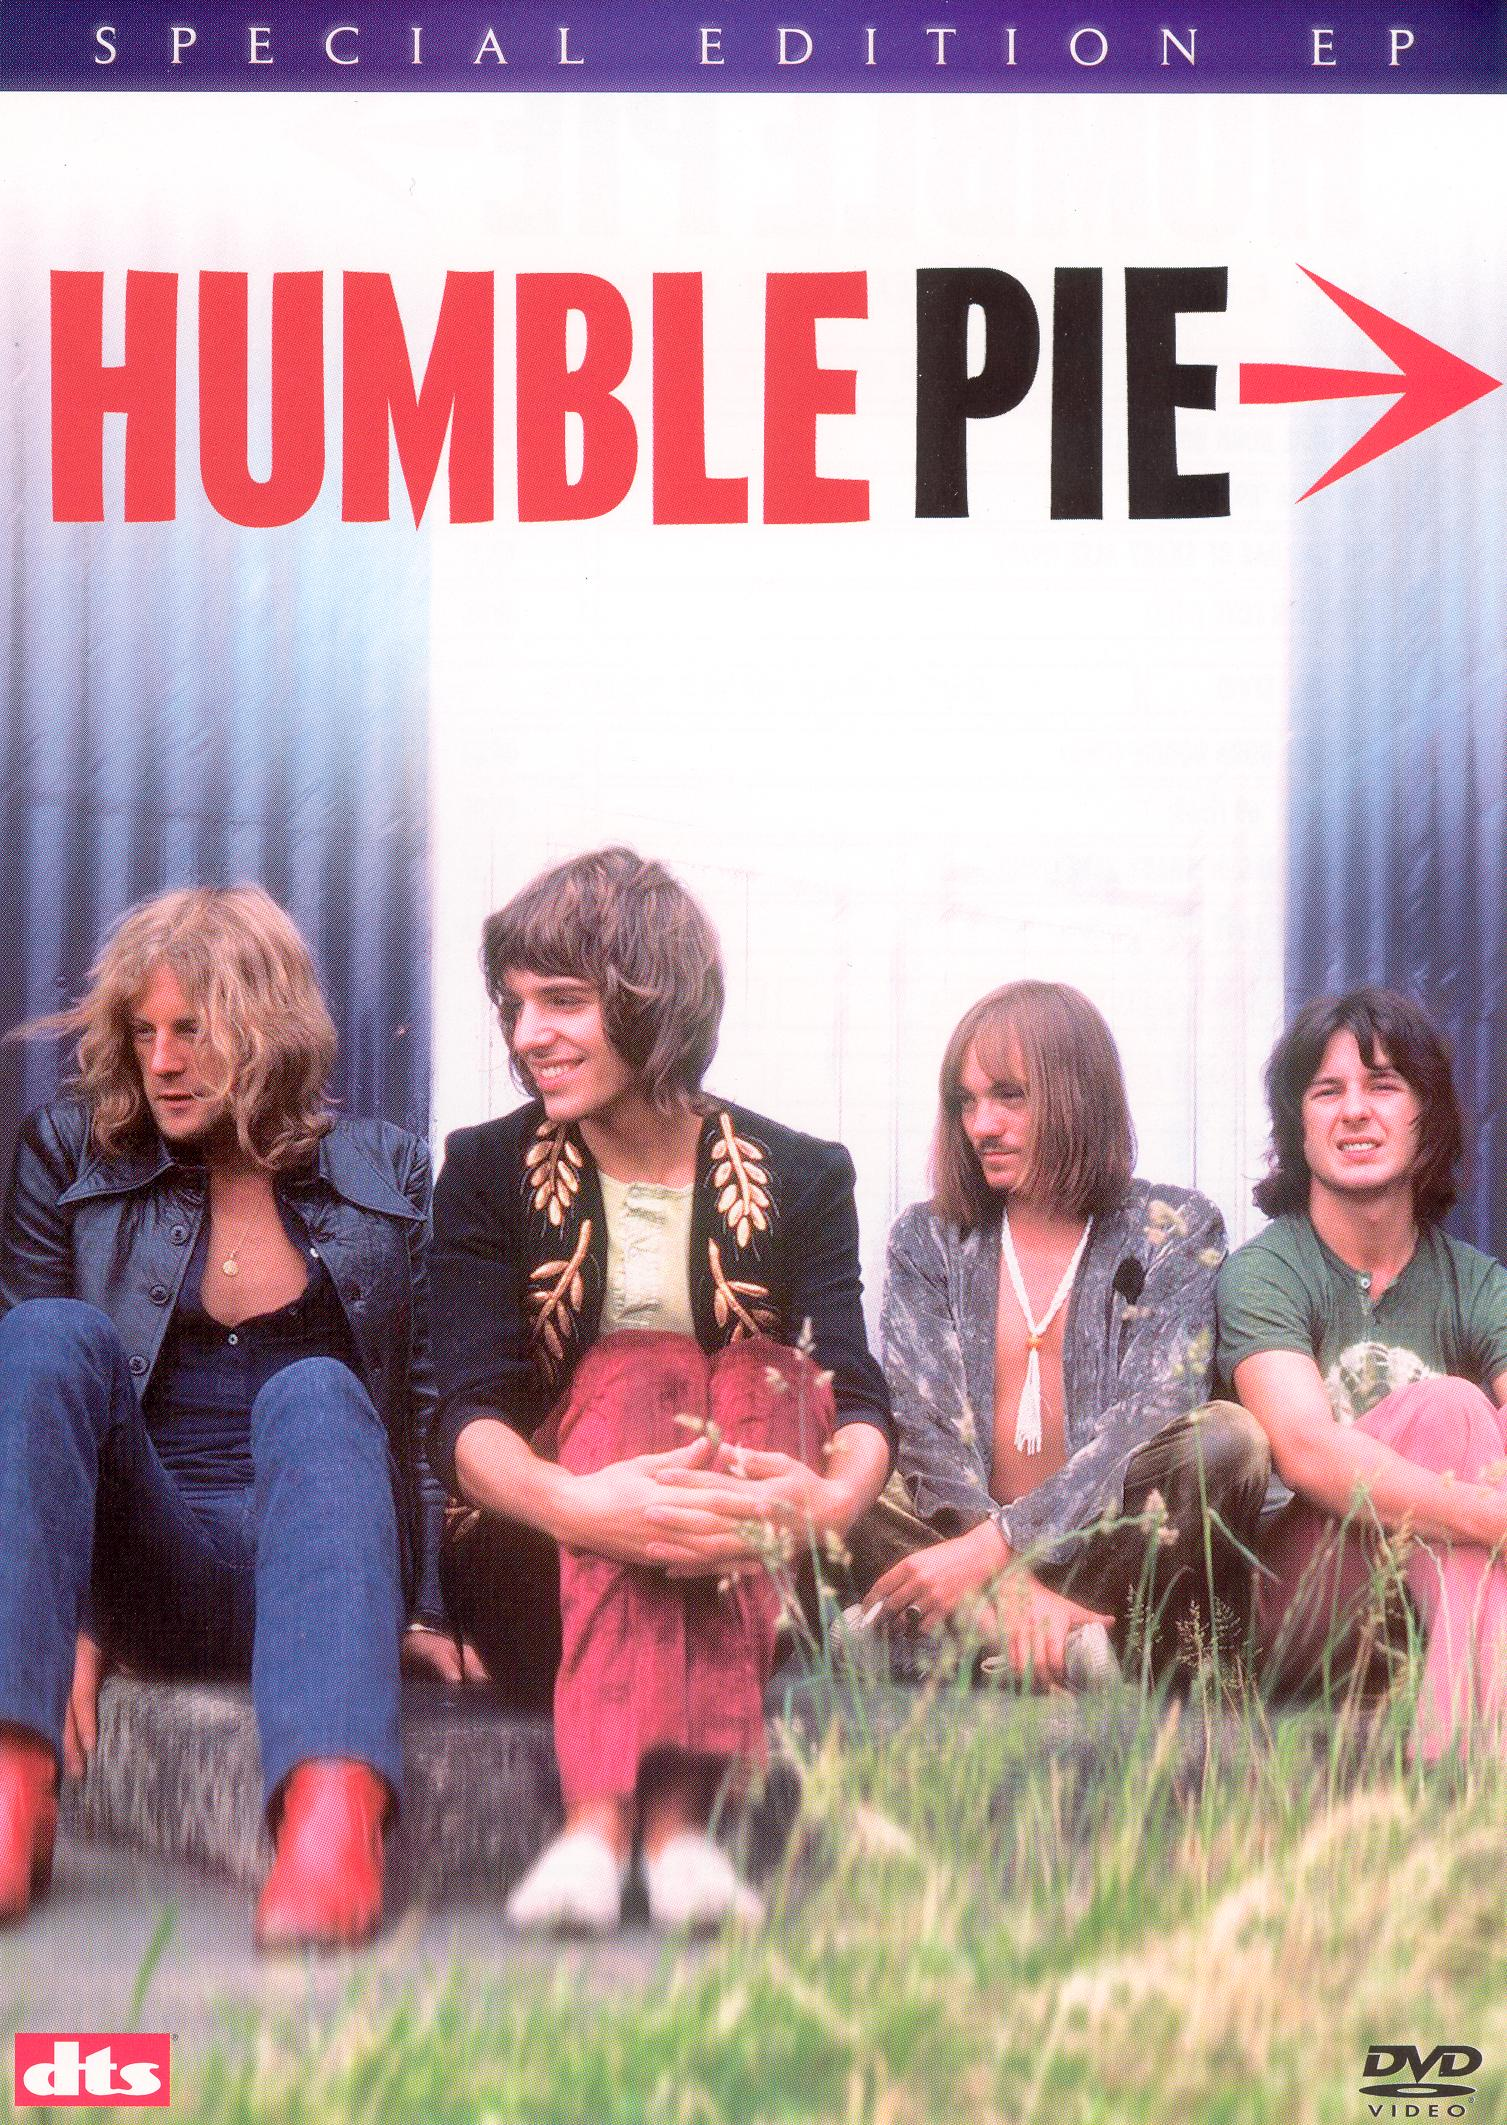 Humble Pie: Special Edition EP